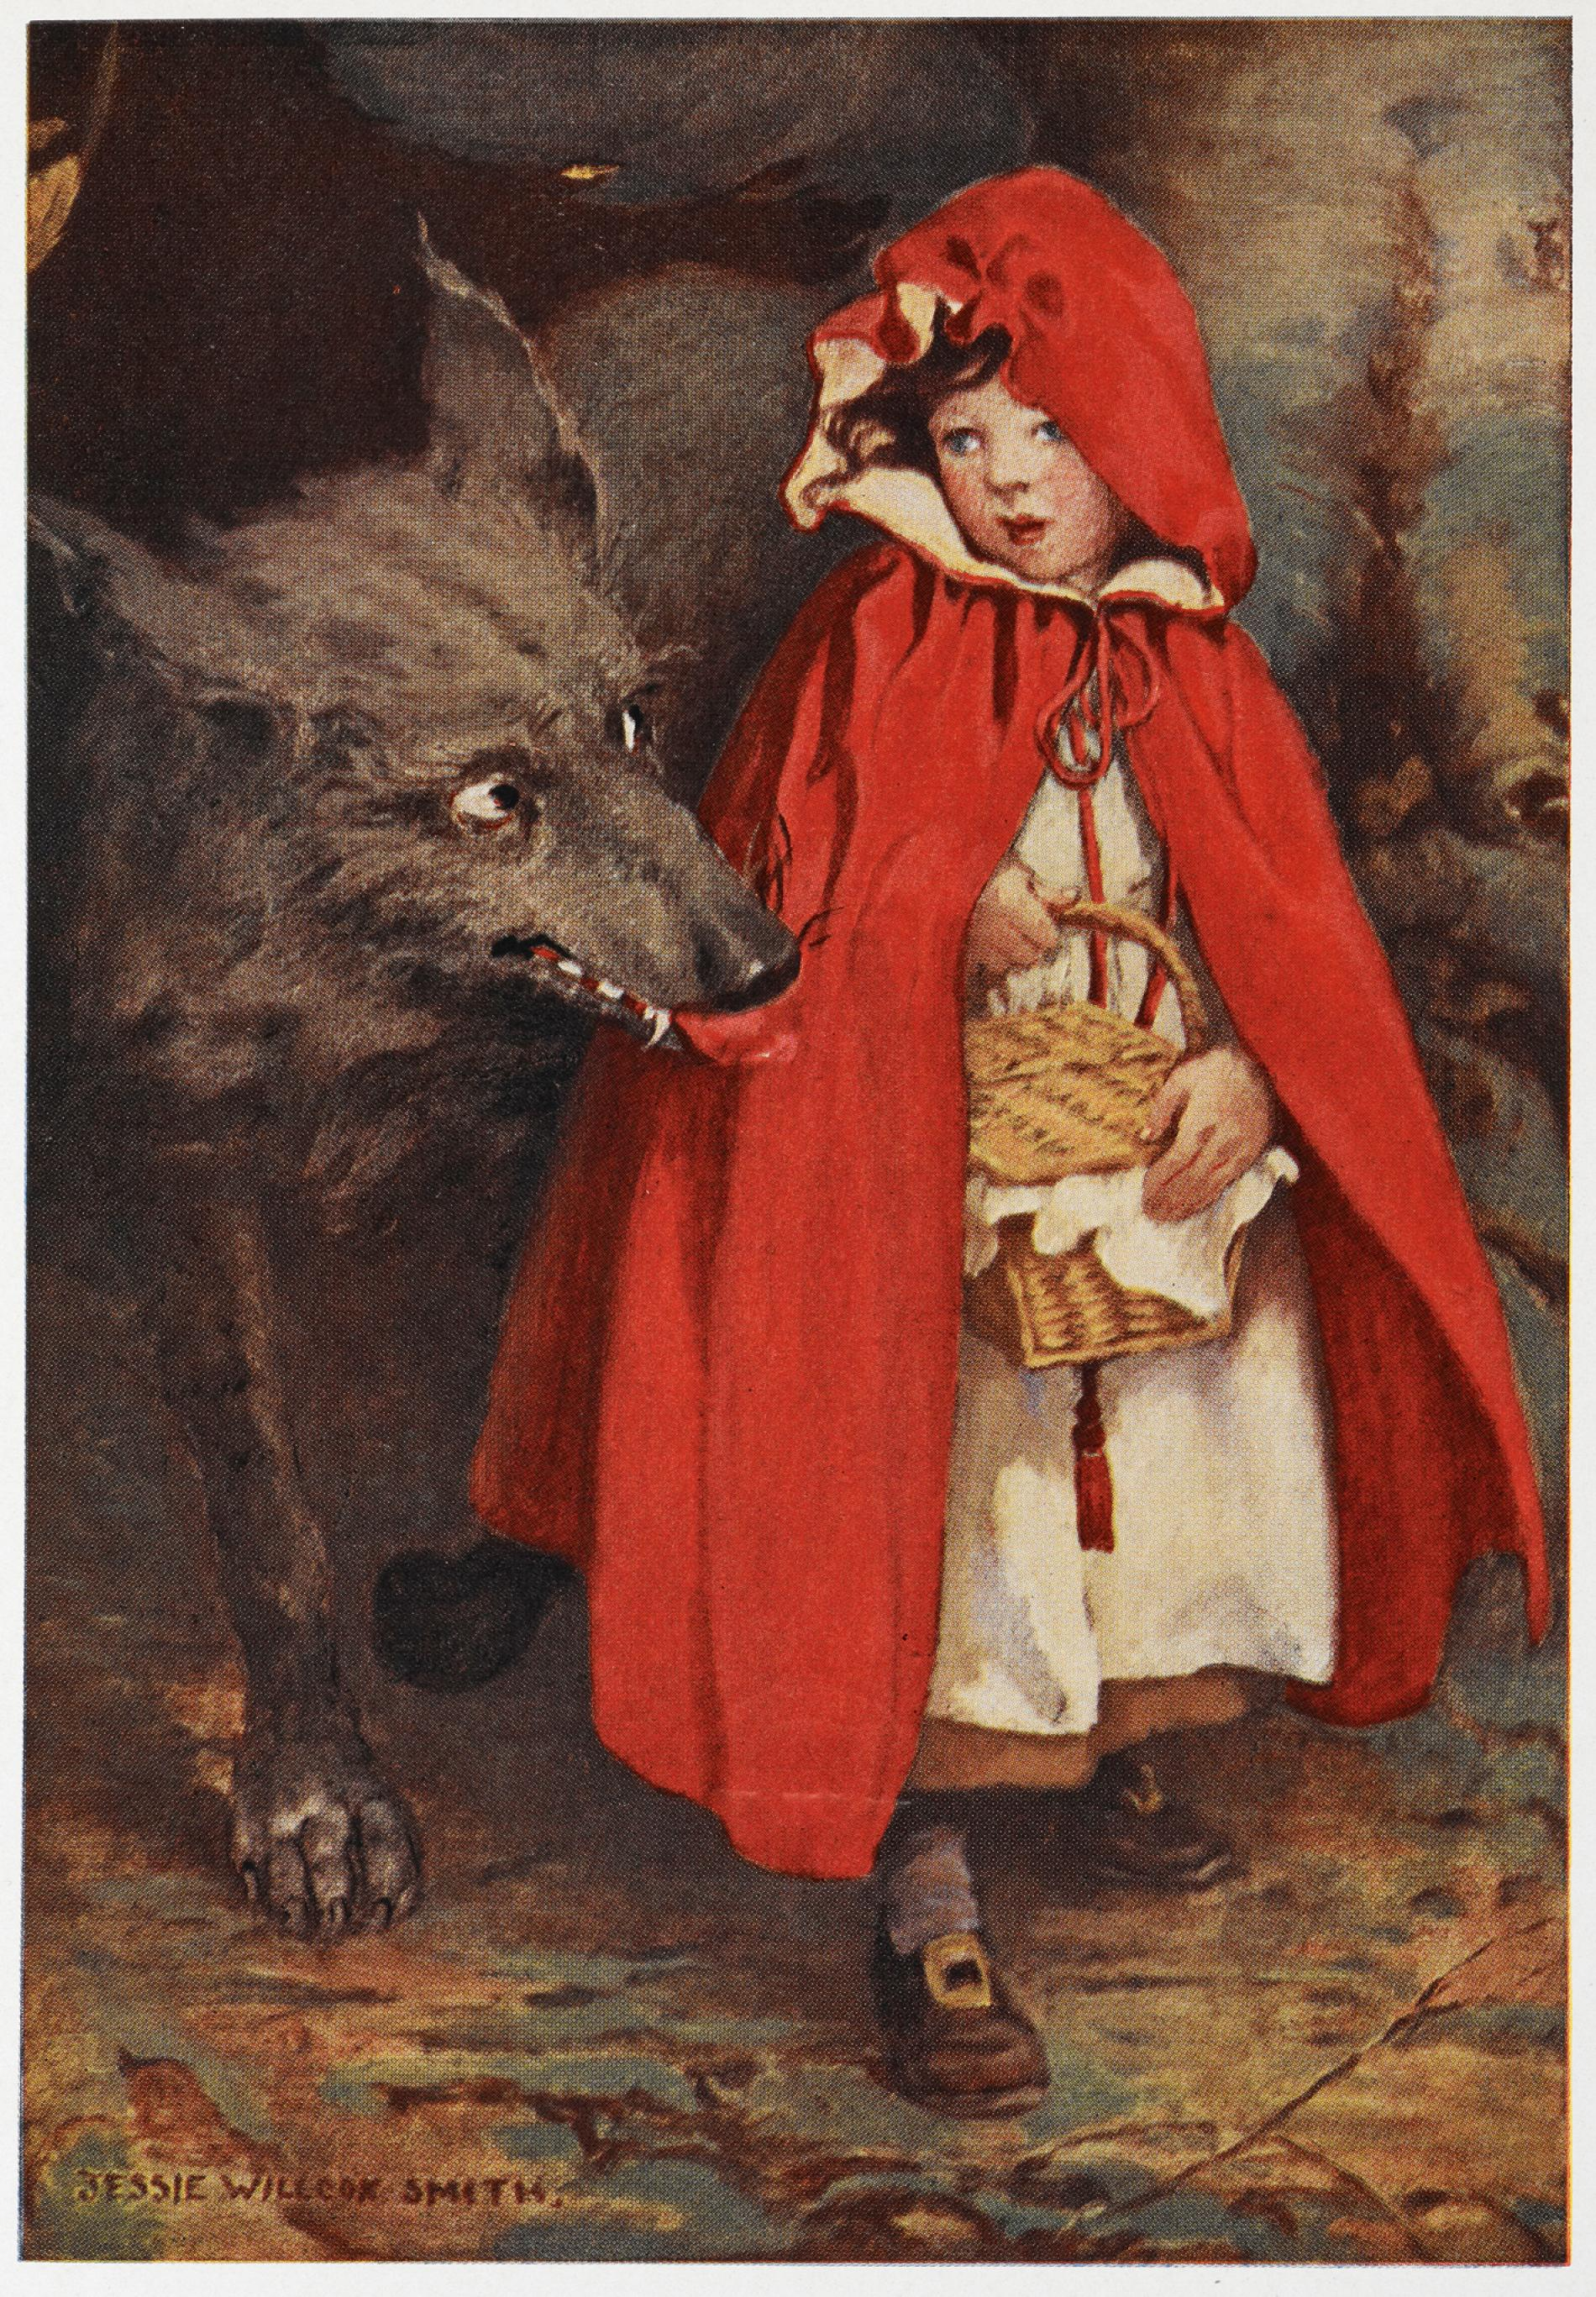 red riding hoo